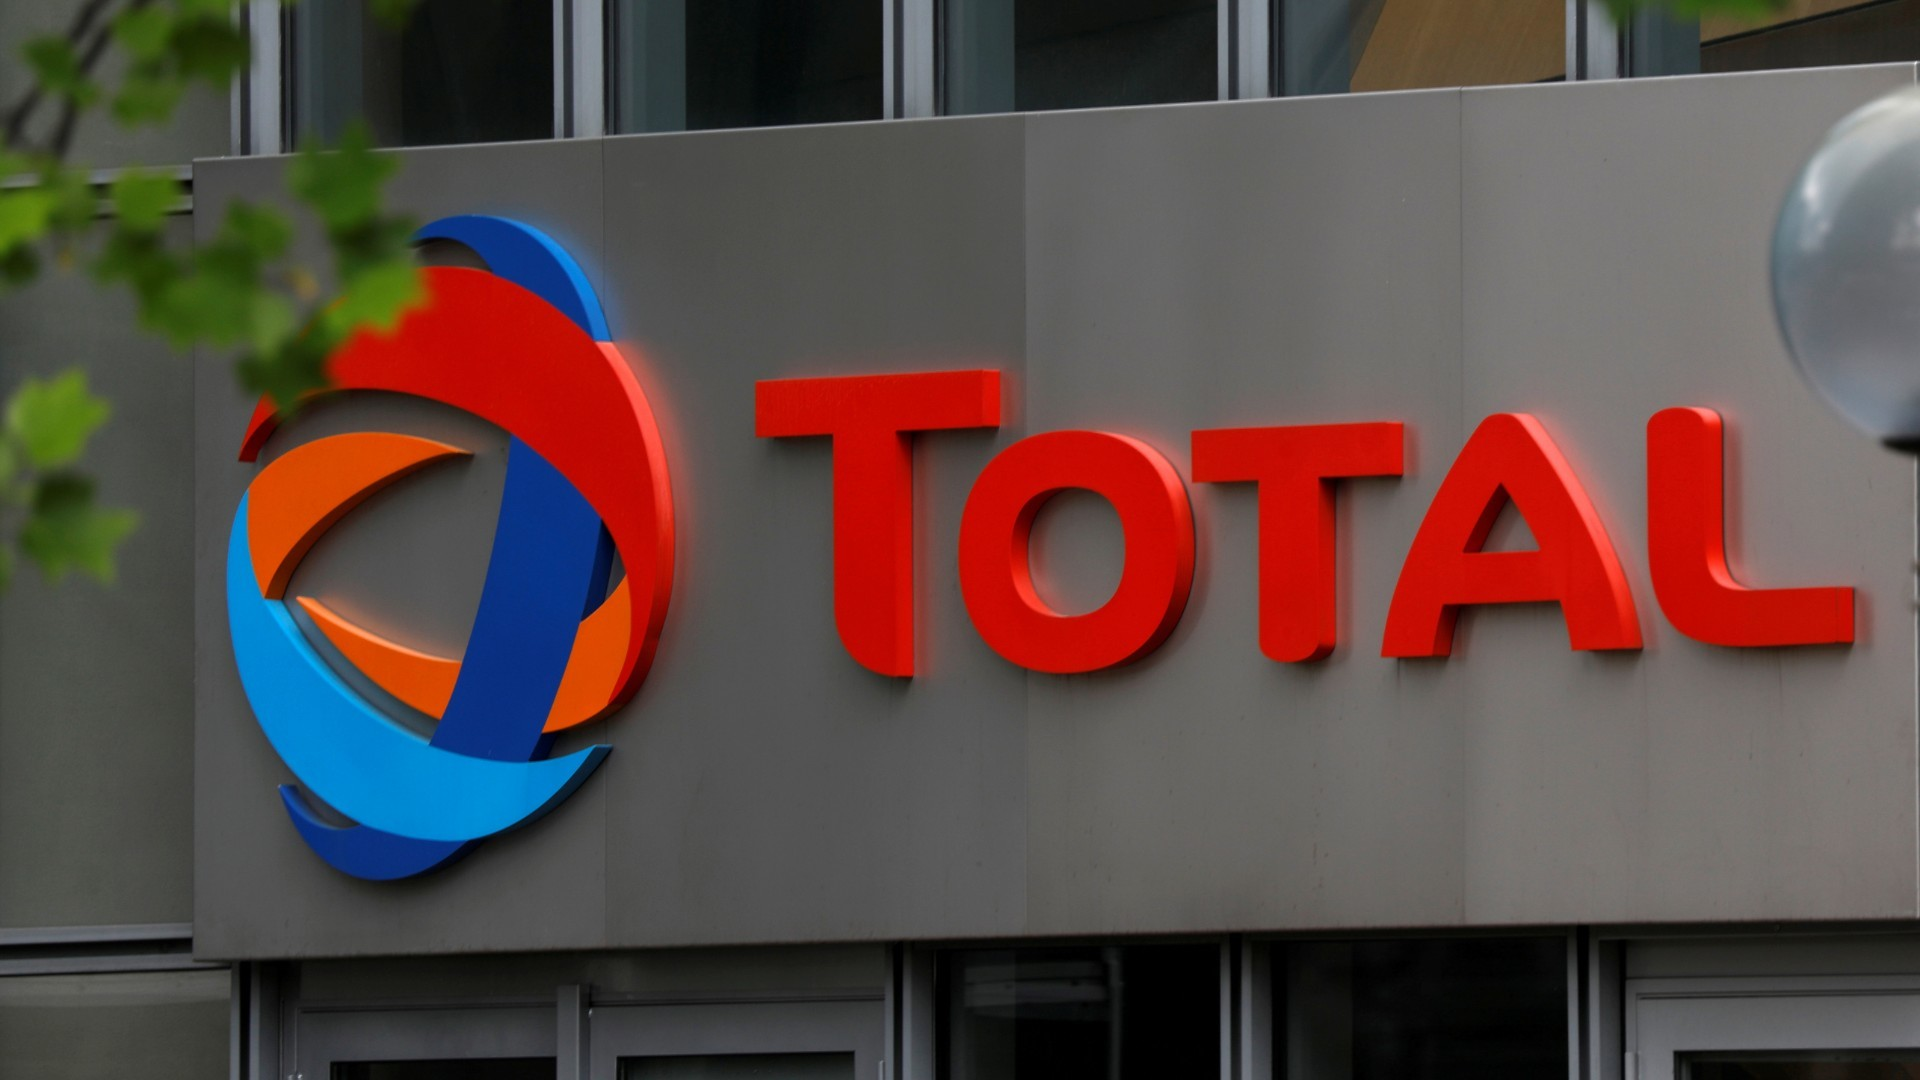 French oil giant Total faces lawsuit over violations in Uganda